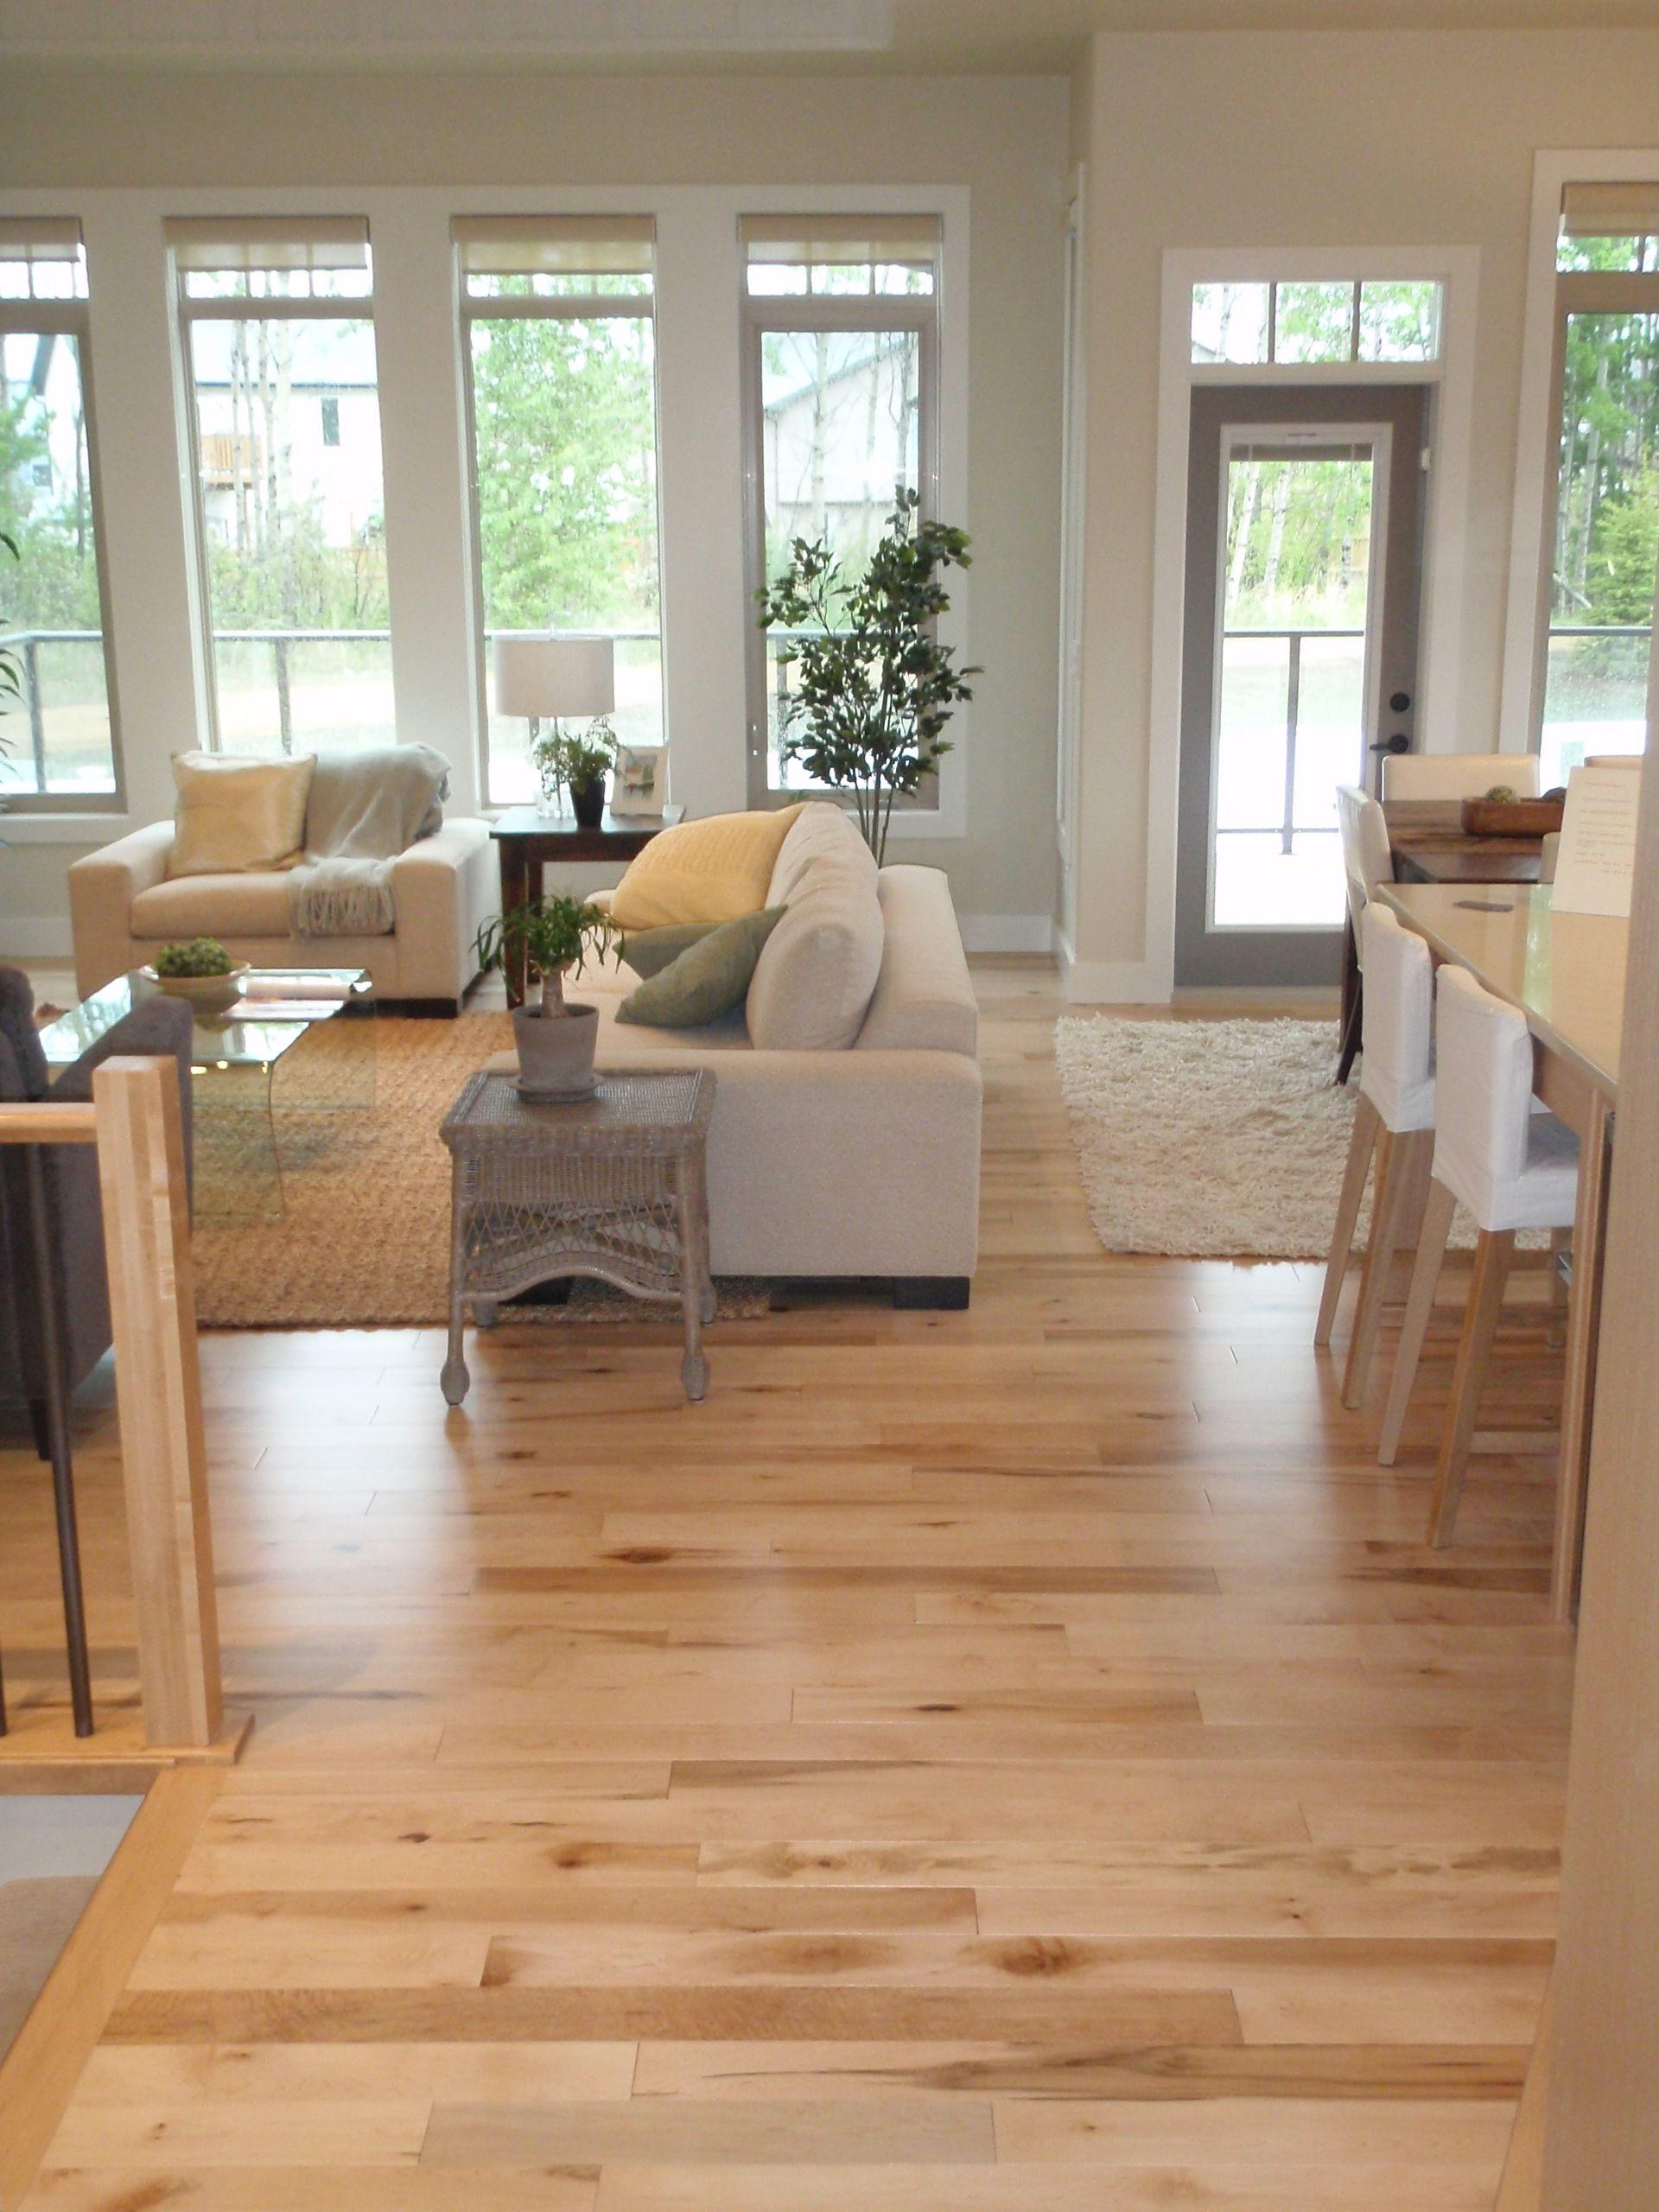 Small Living Room with Light Wood Floors, hardwood floors Hardwood Flooring love how the light